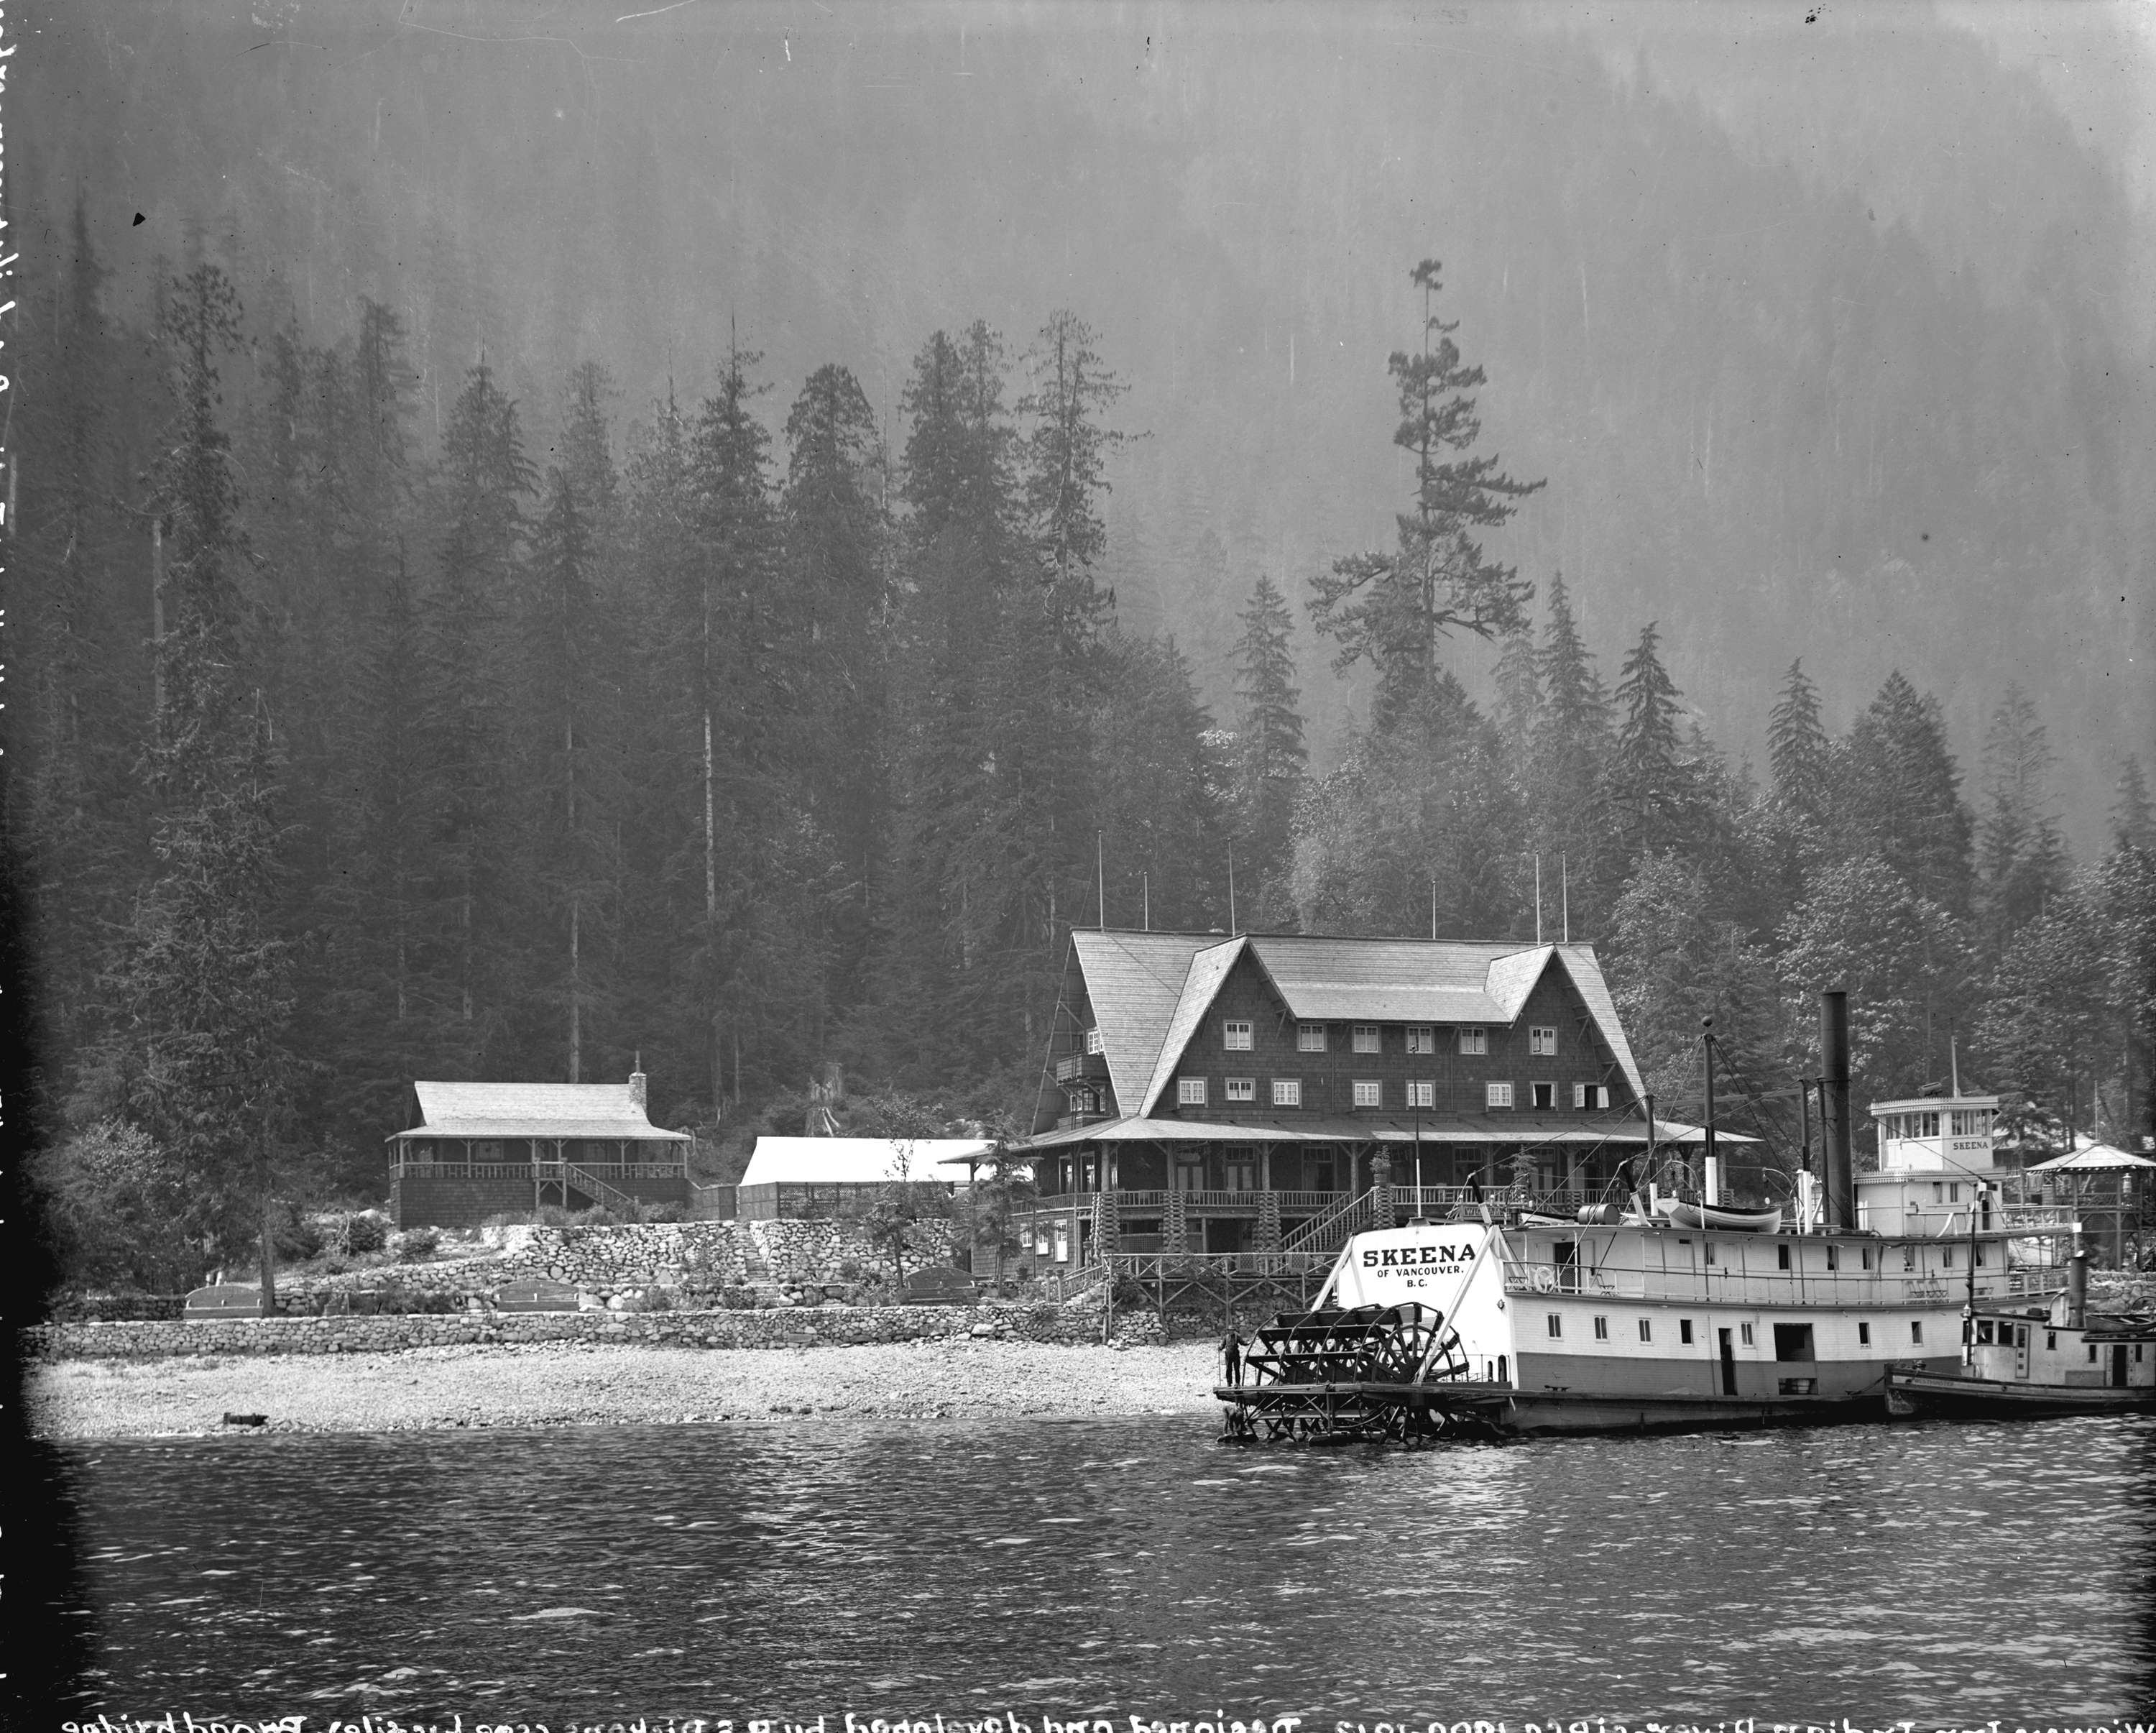 The Sternwheeler Quot Skeena Quot In Front Of The Wigwam Inn City Of Vancouver Archives